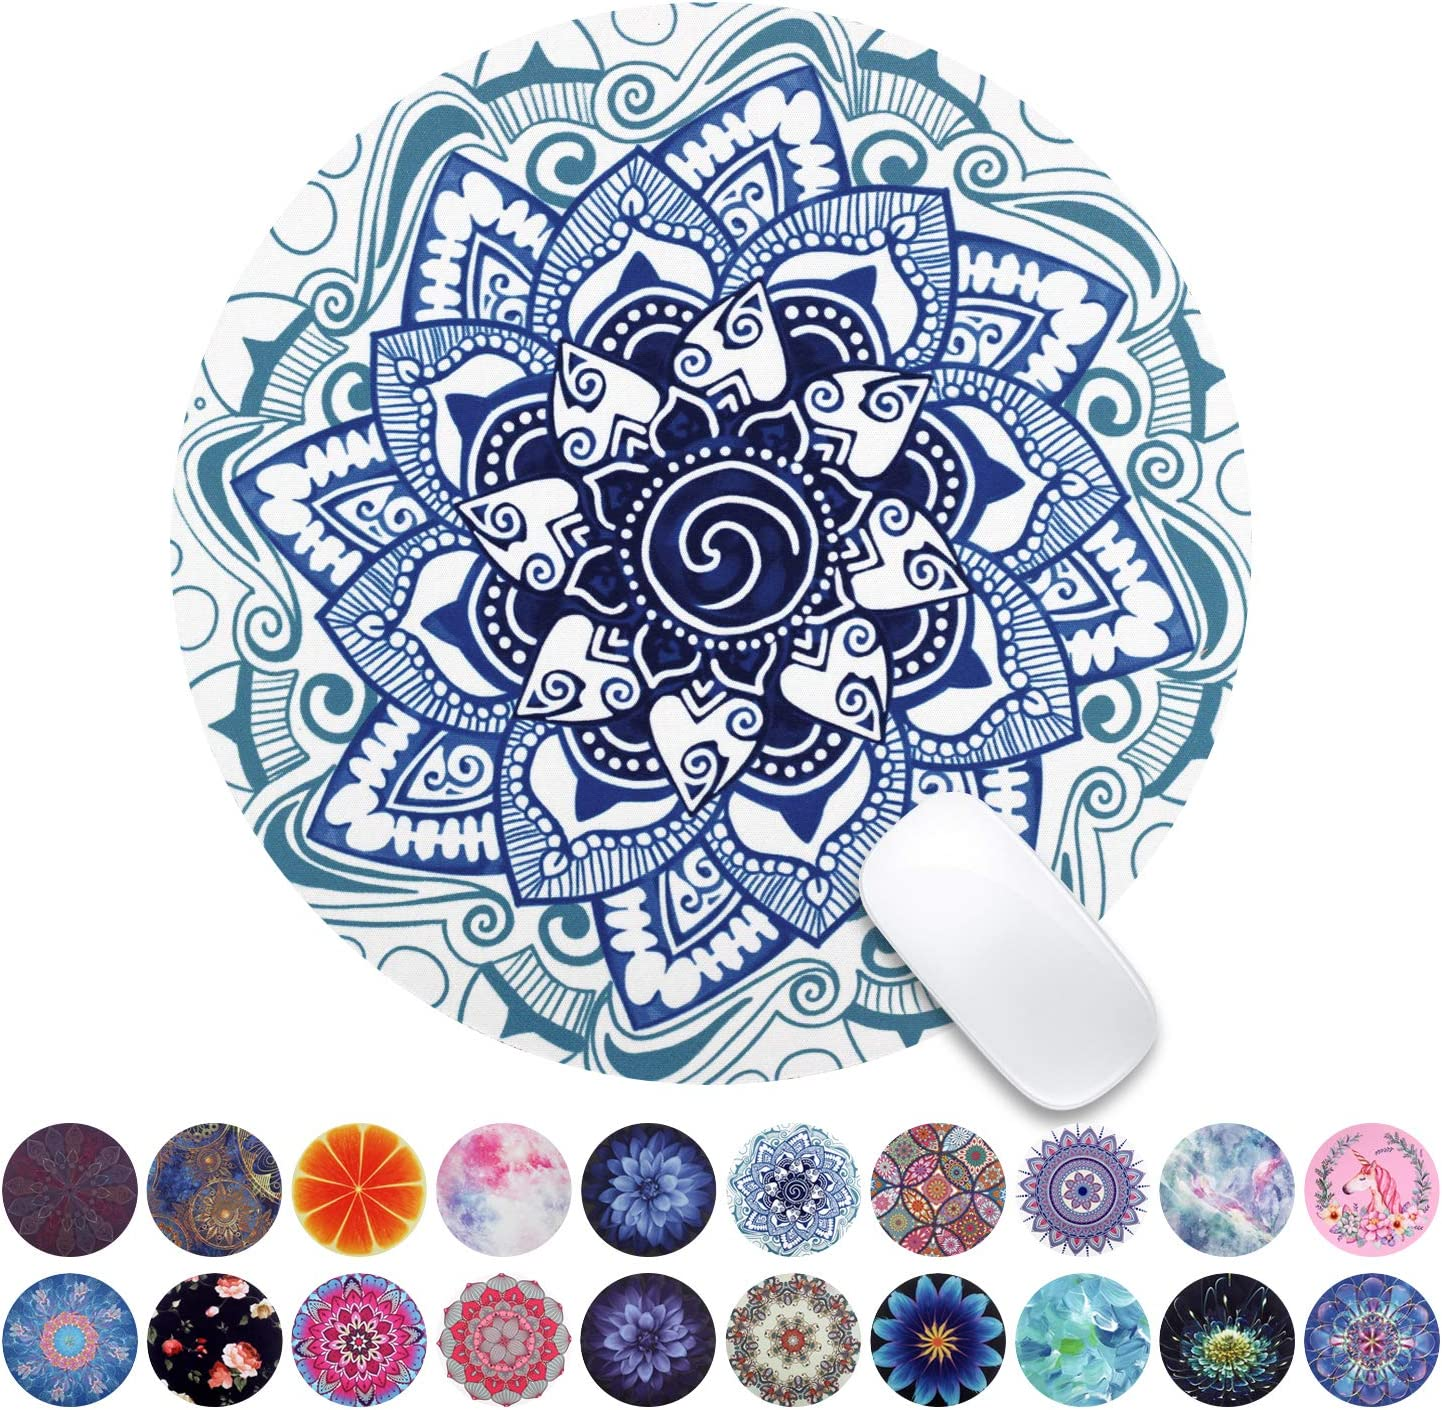 Today's only NEW Beautiful Mandala Mouse Pad with Round Desig